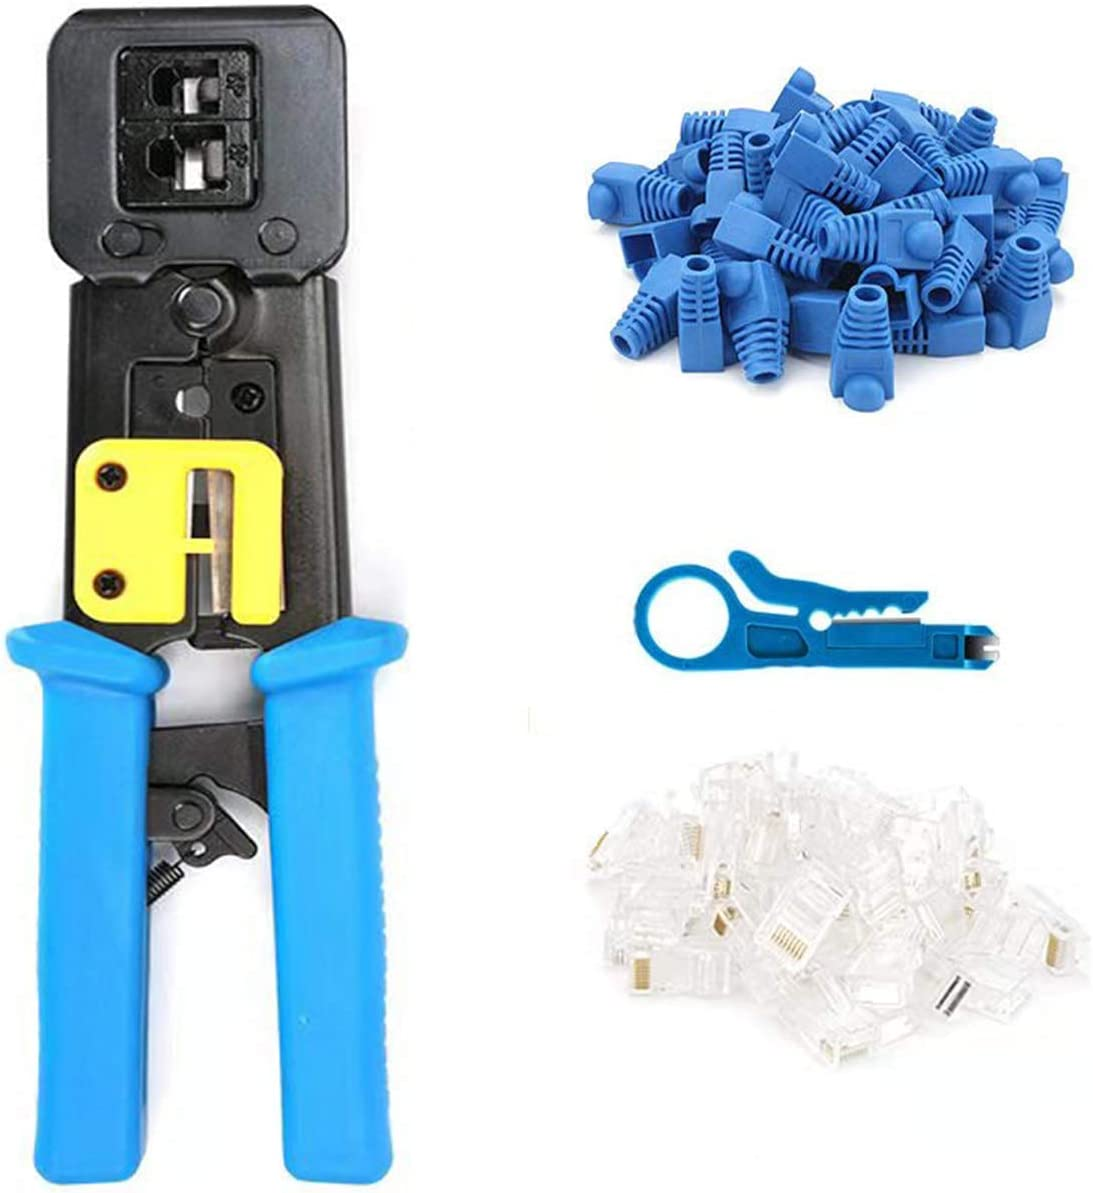 RJ45 Professional Crimp Tool Pass Through Fast Cat5 Cat5e New York Mall a Cat6 At the price